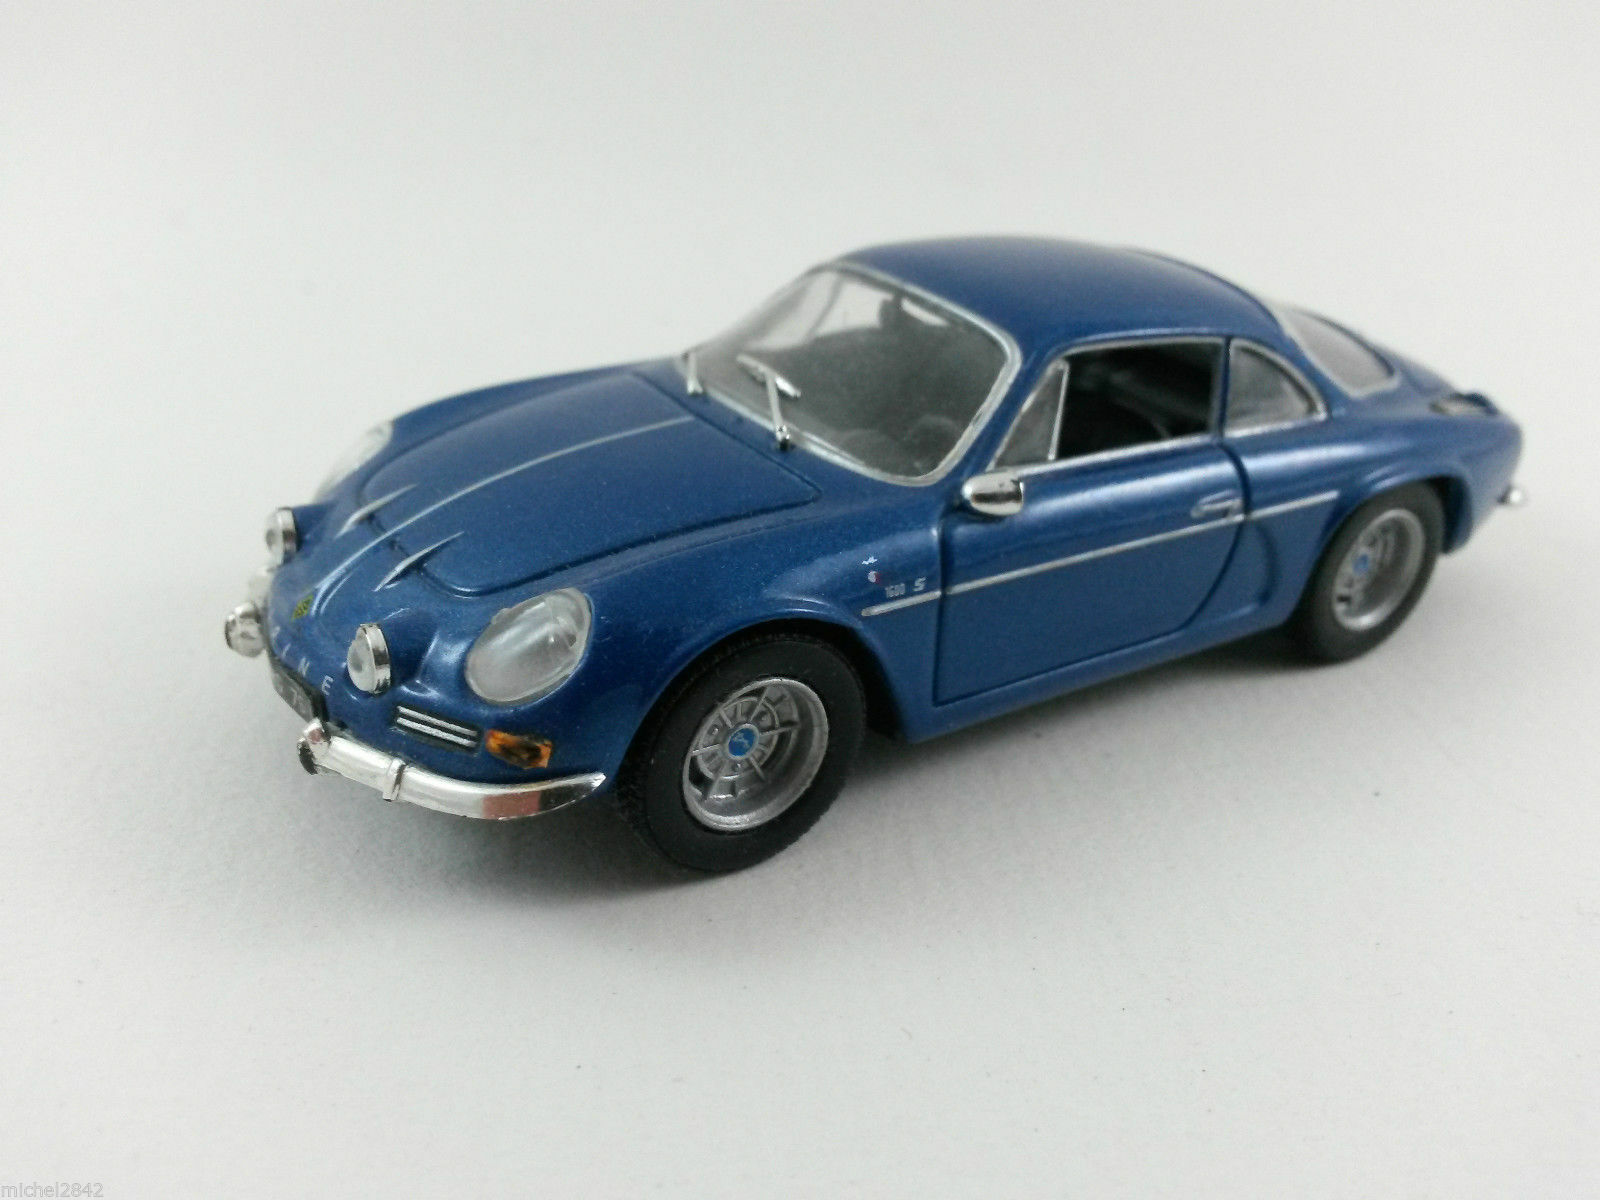 Alpine Renault A110 1:43 1:43 A110 Universal Hobbies UH 6db548